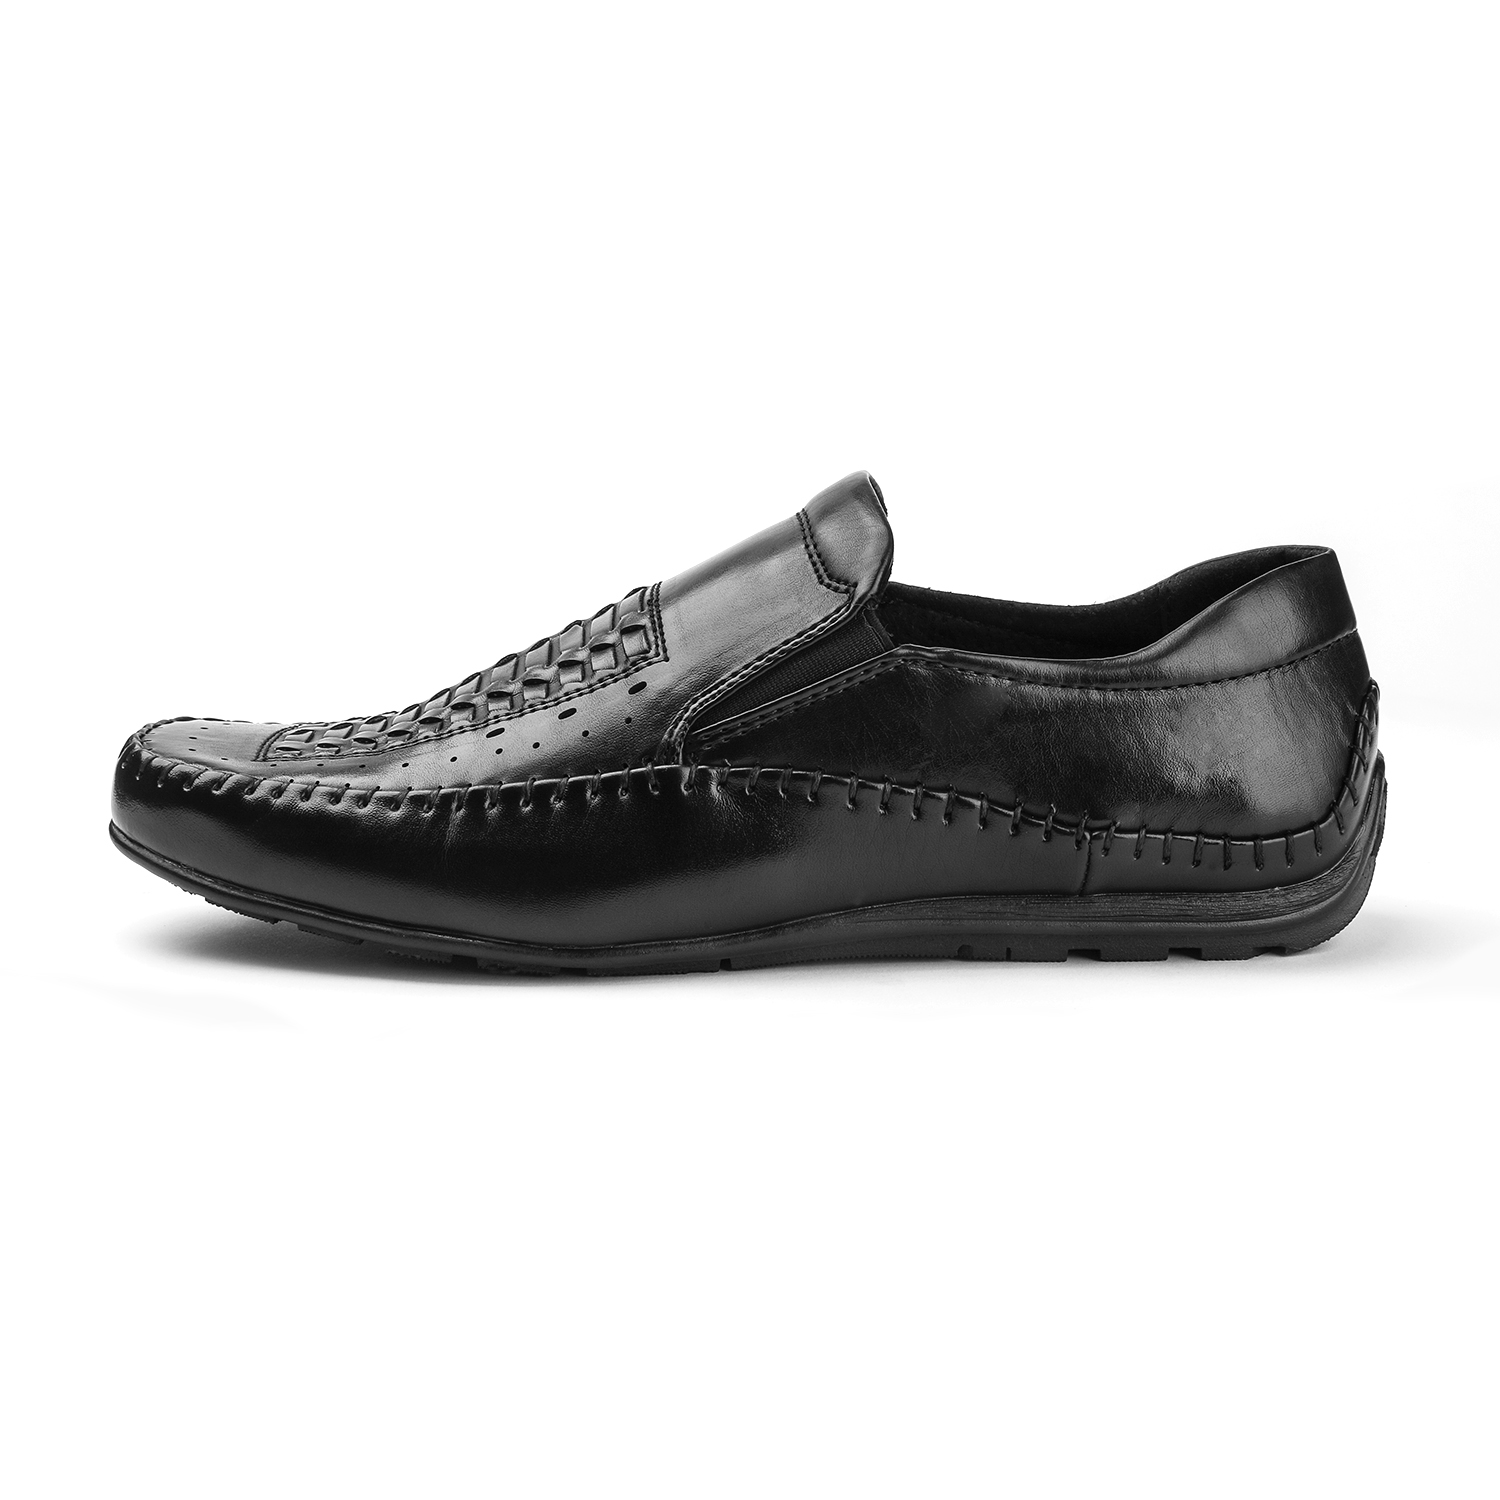 Bruno-Marc-Mens-Penny-Light-Loafers-Moccasins-Driving-Flats-Slip-On-Casual-Shoes thumbnail 6